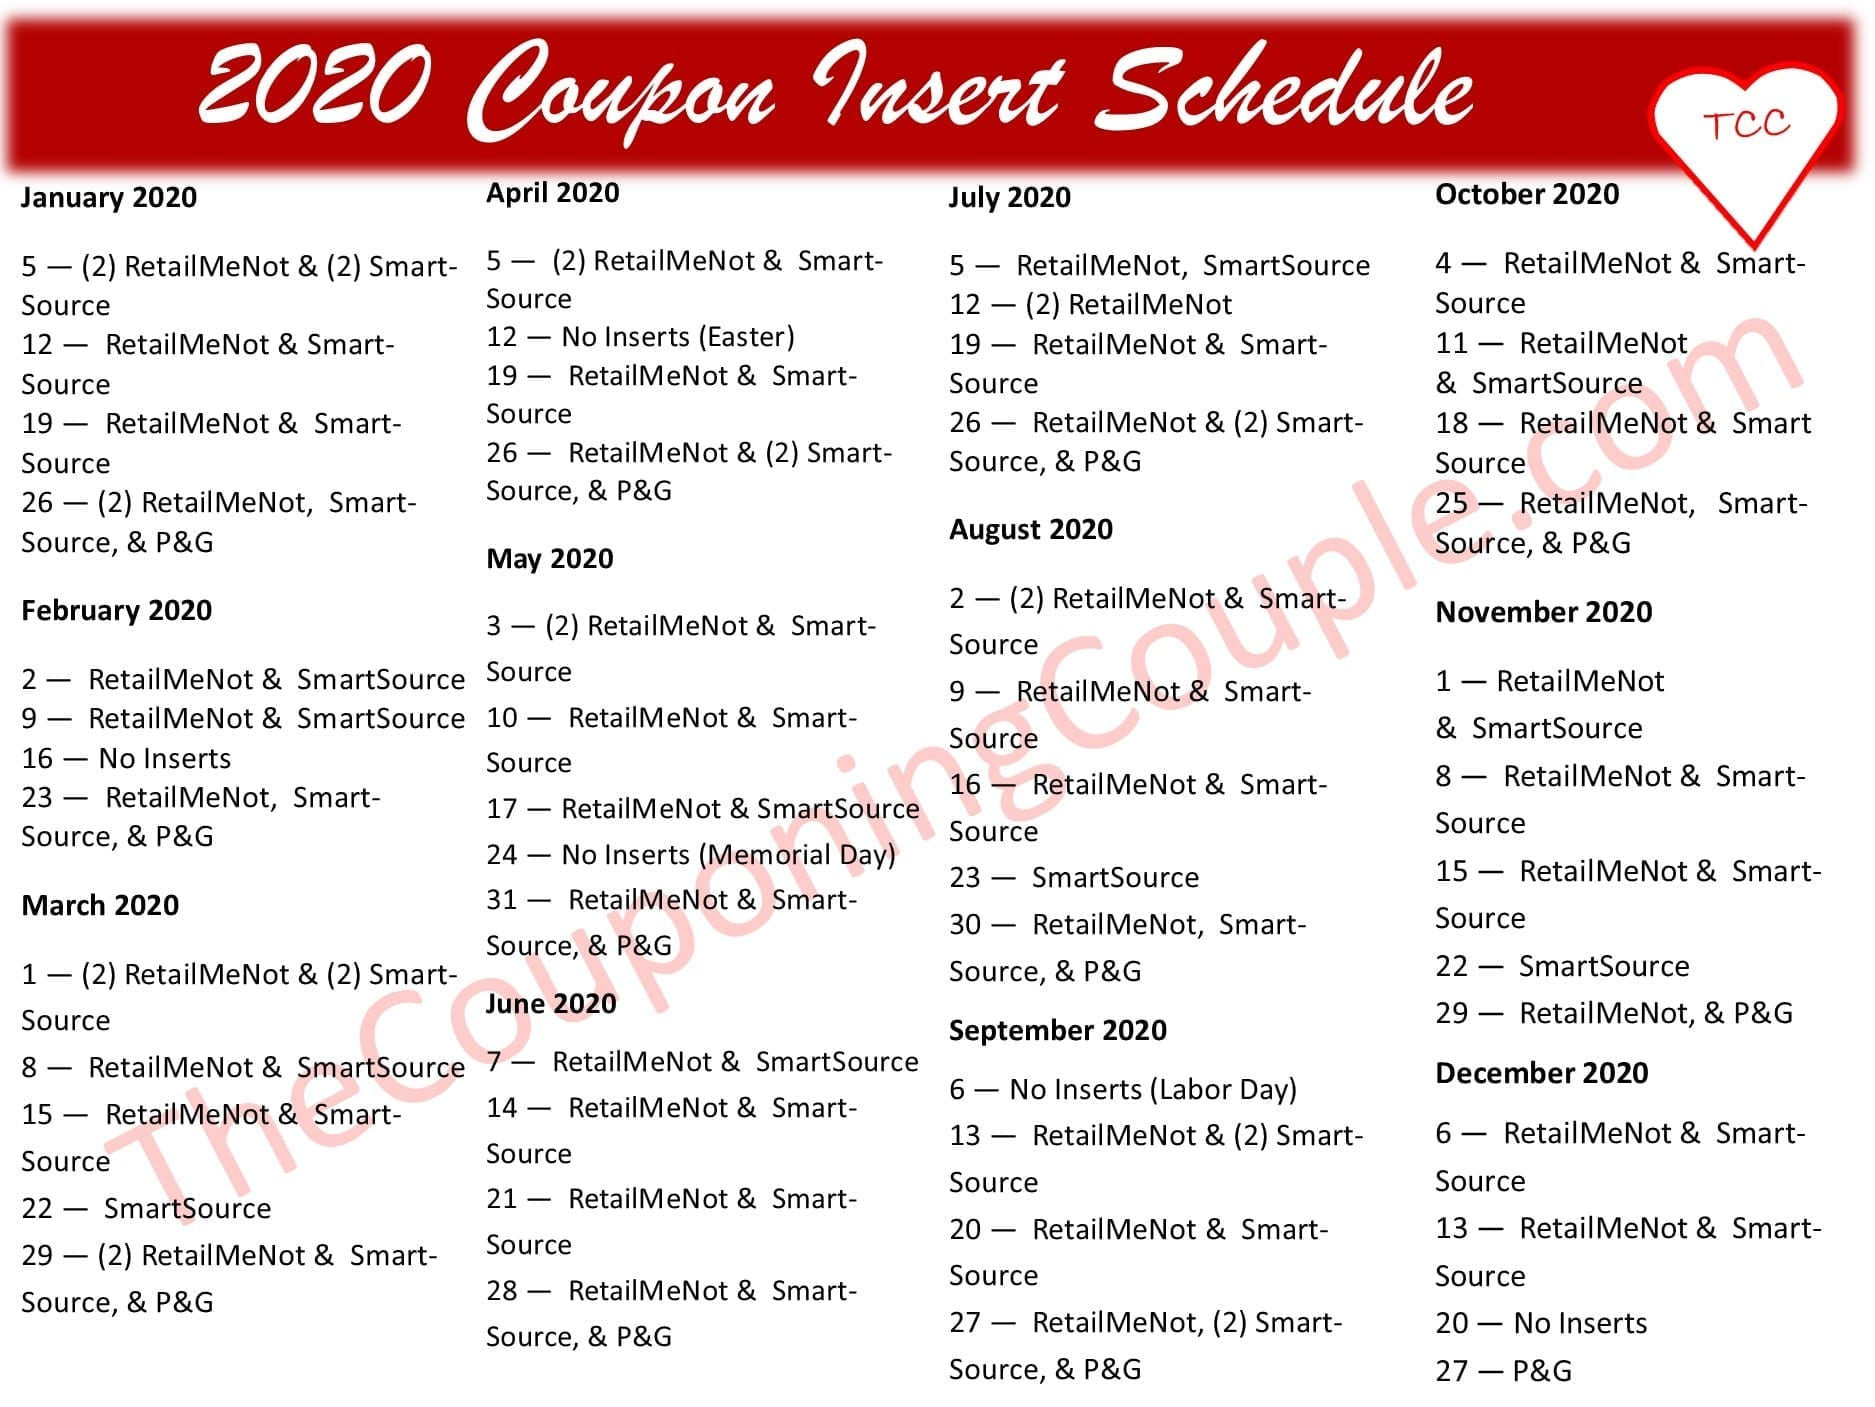 Coupon Insert Schedule 2020